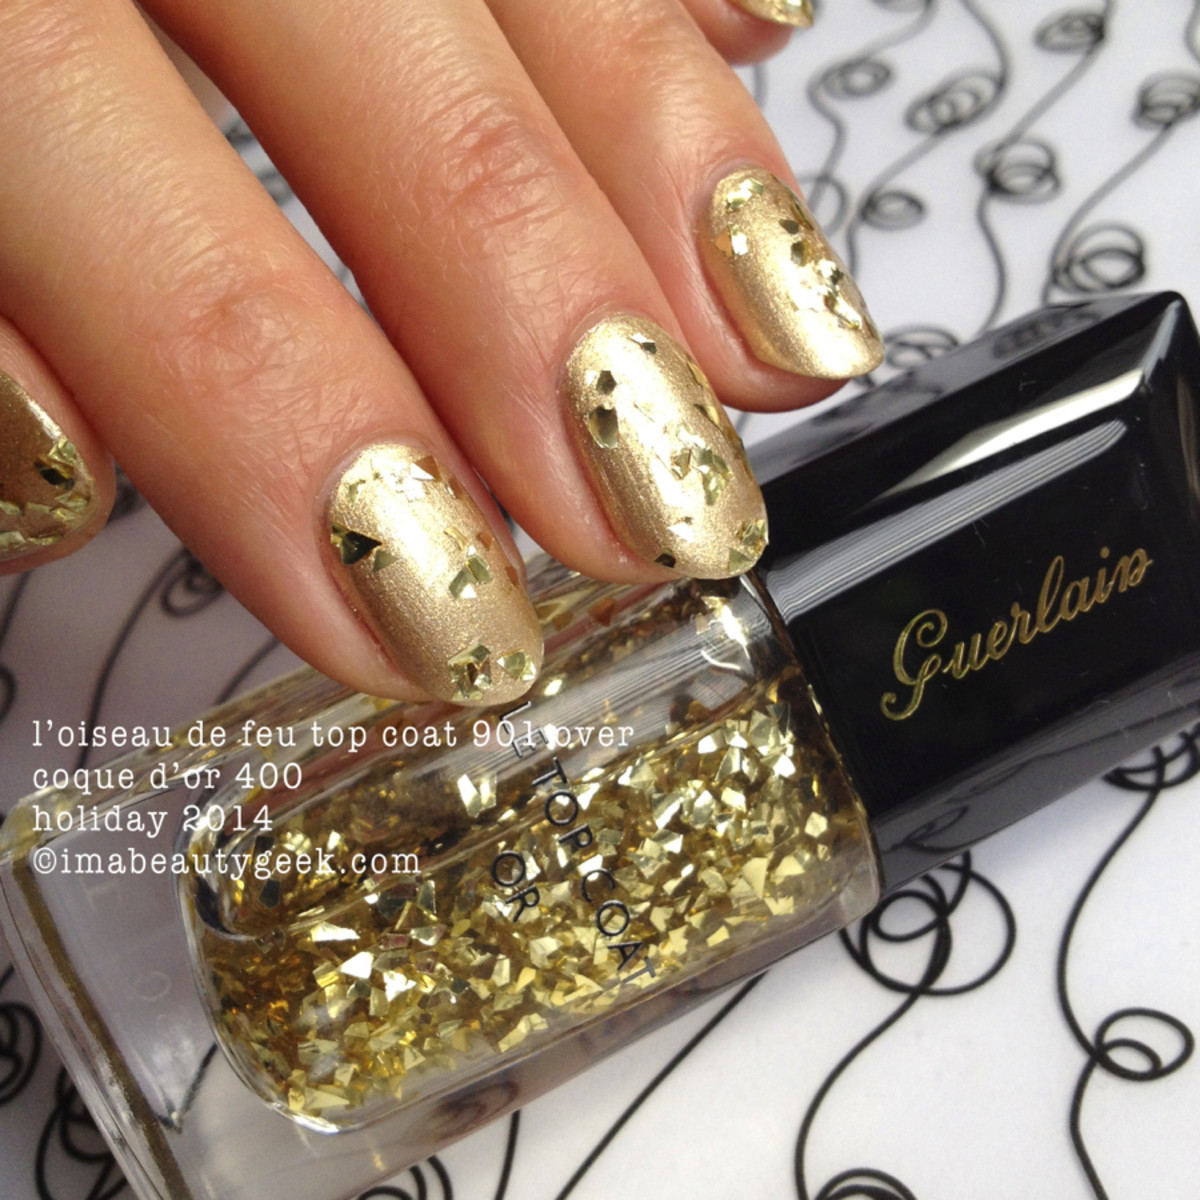 Guerlain Holiday 2014: La Laque Couleur Coque d'Or